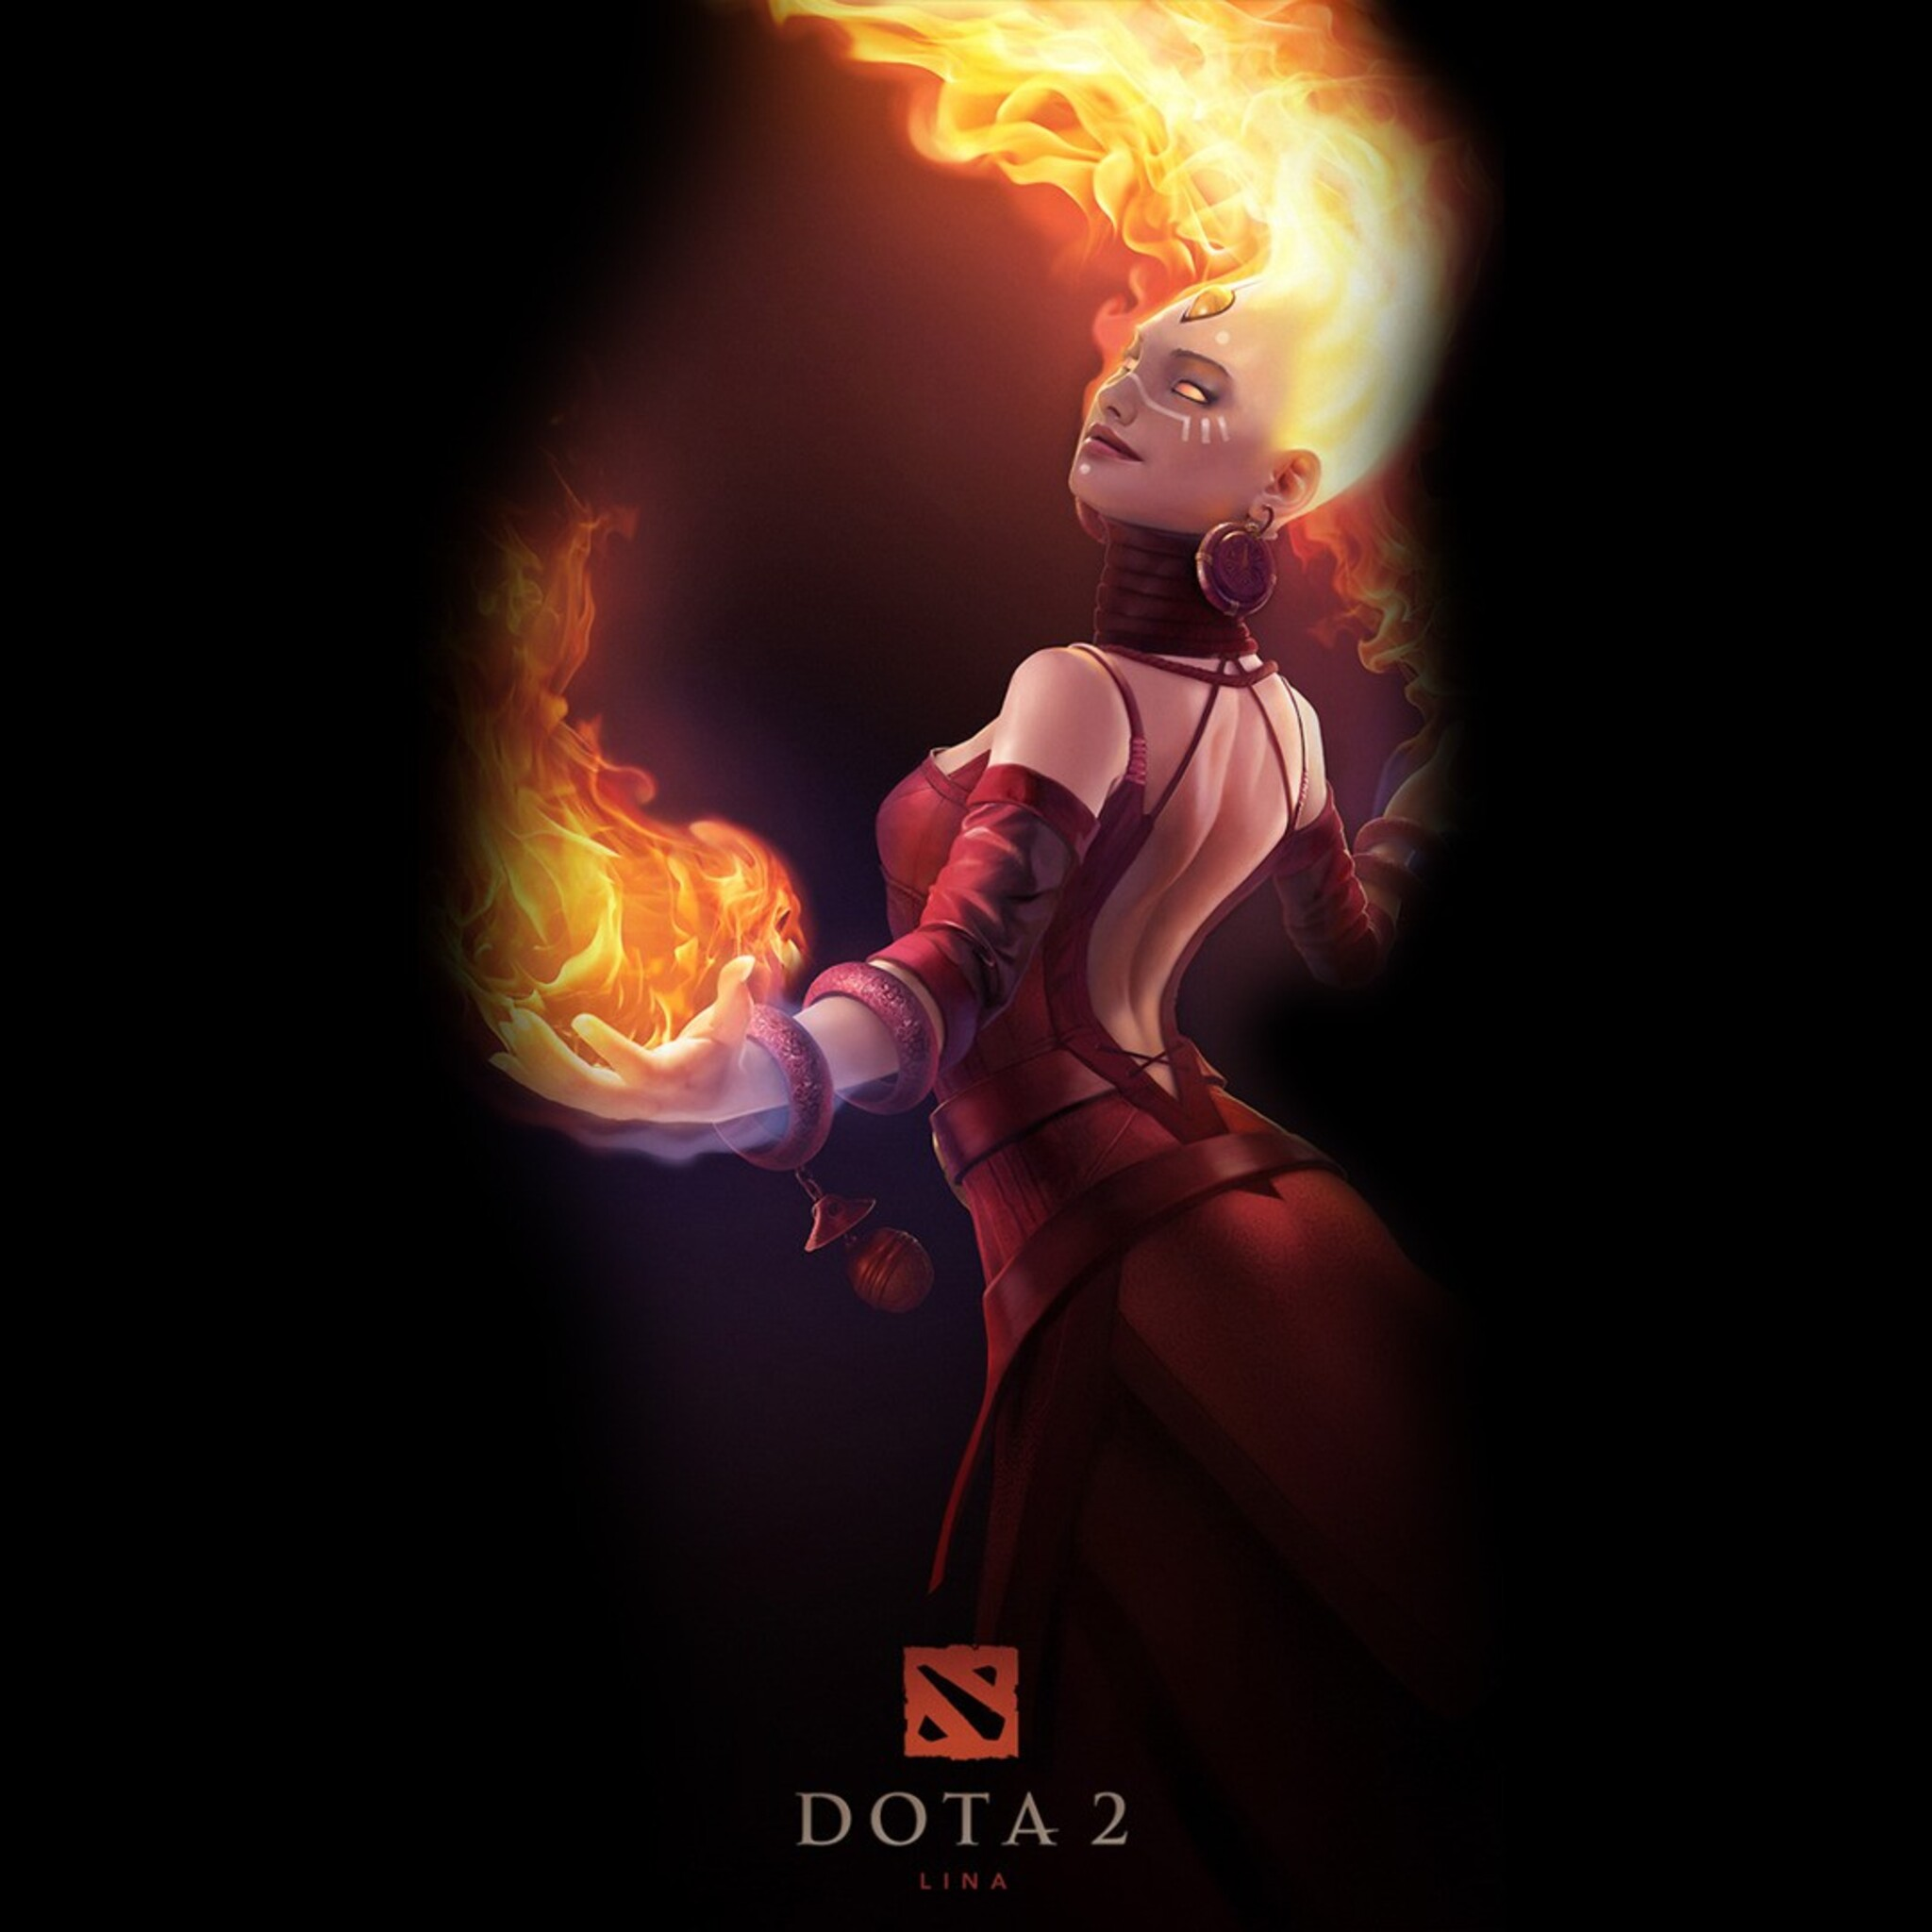 download dota 2 latest hd 4k wallpapers in 2048x2048 screen resolution